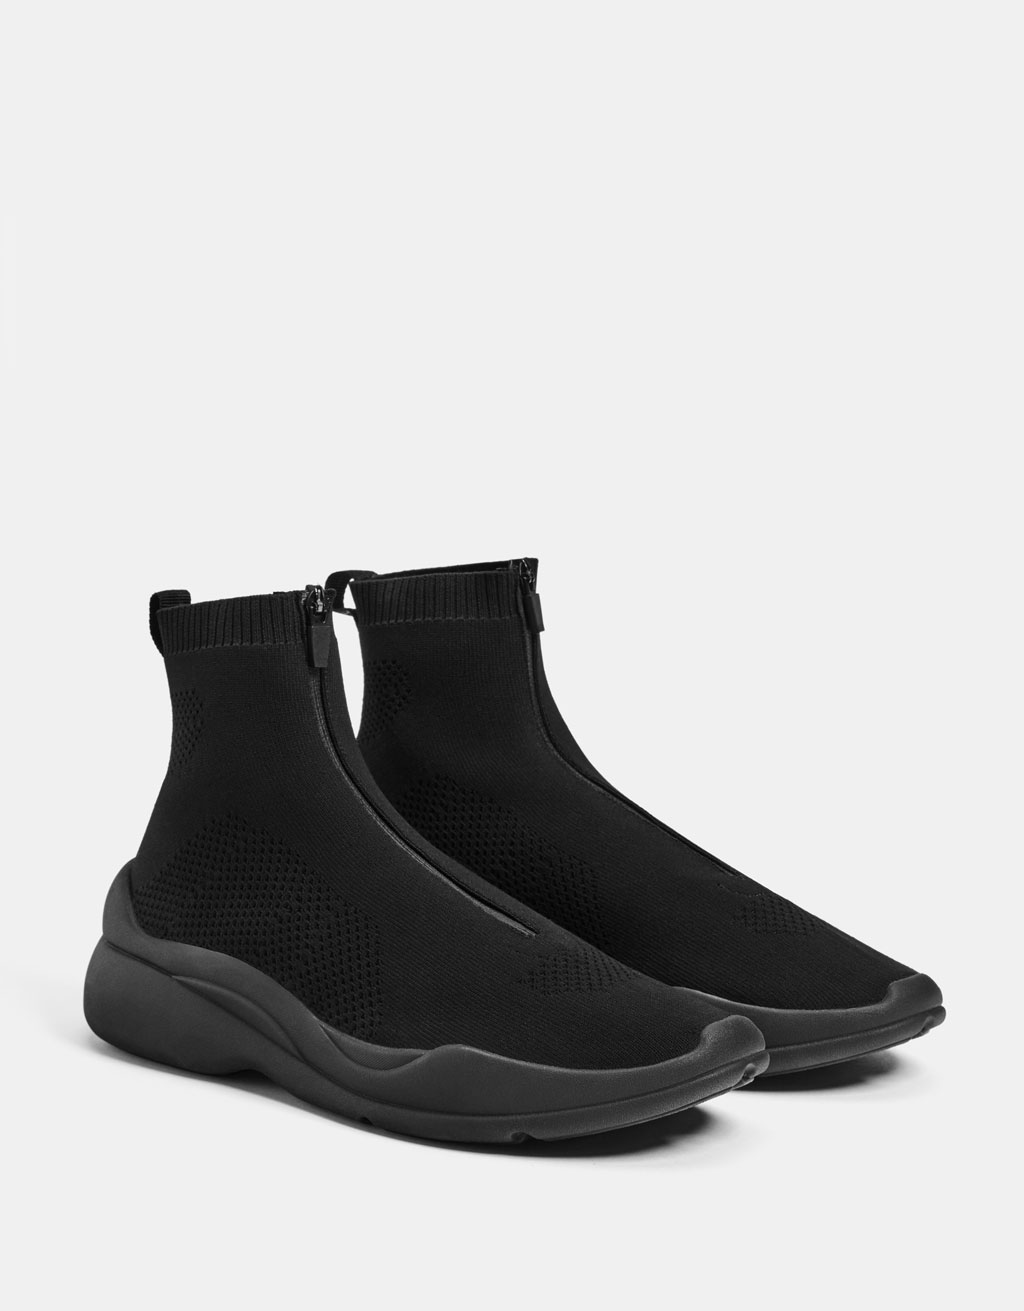 Men's zip-up sock-style sneakers